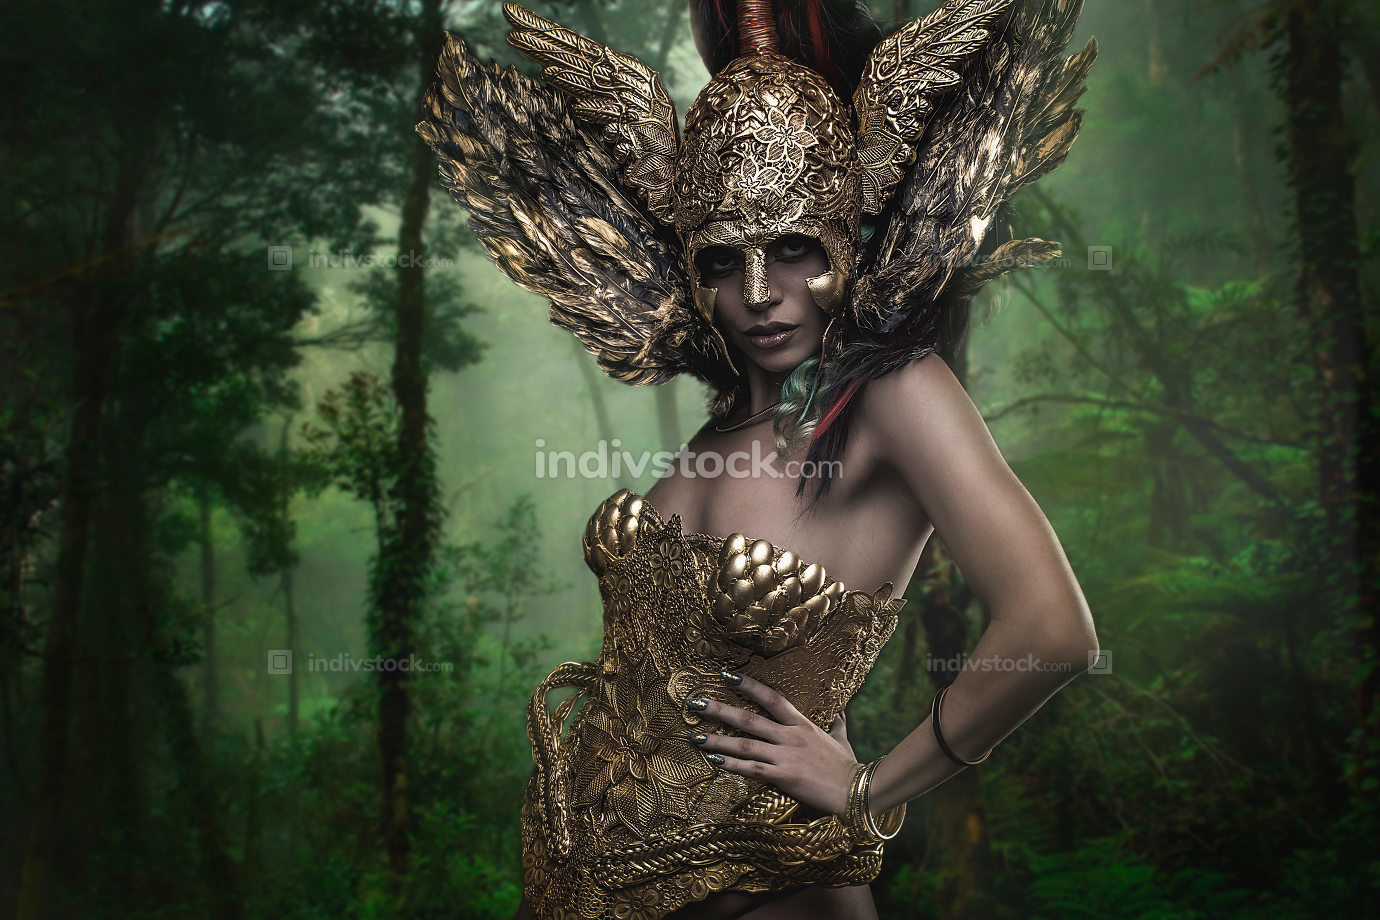 Magical, Deity, beautiful woman with green hair in golden goddes